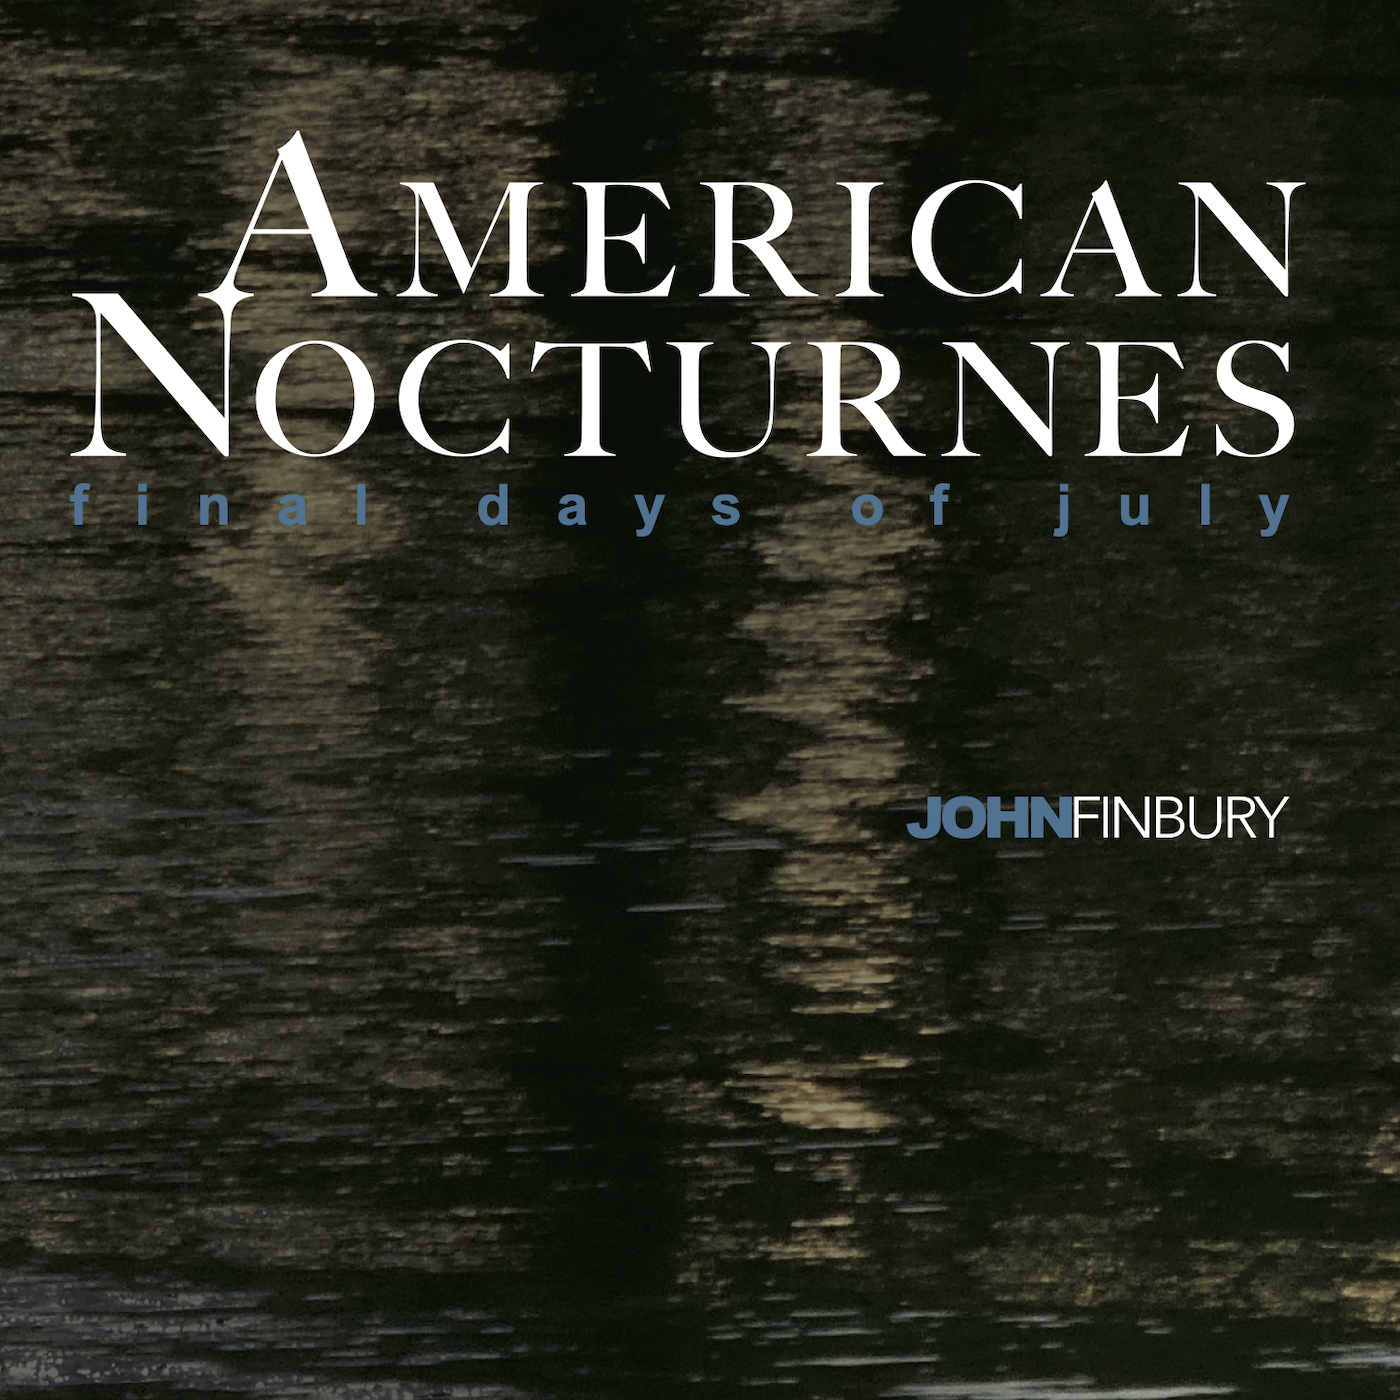 The JW Vibe Review of American Nocturnes: Final Days of July